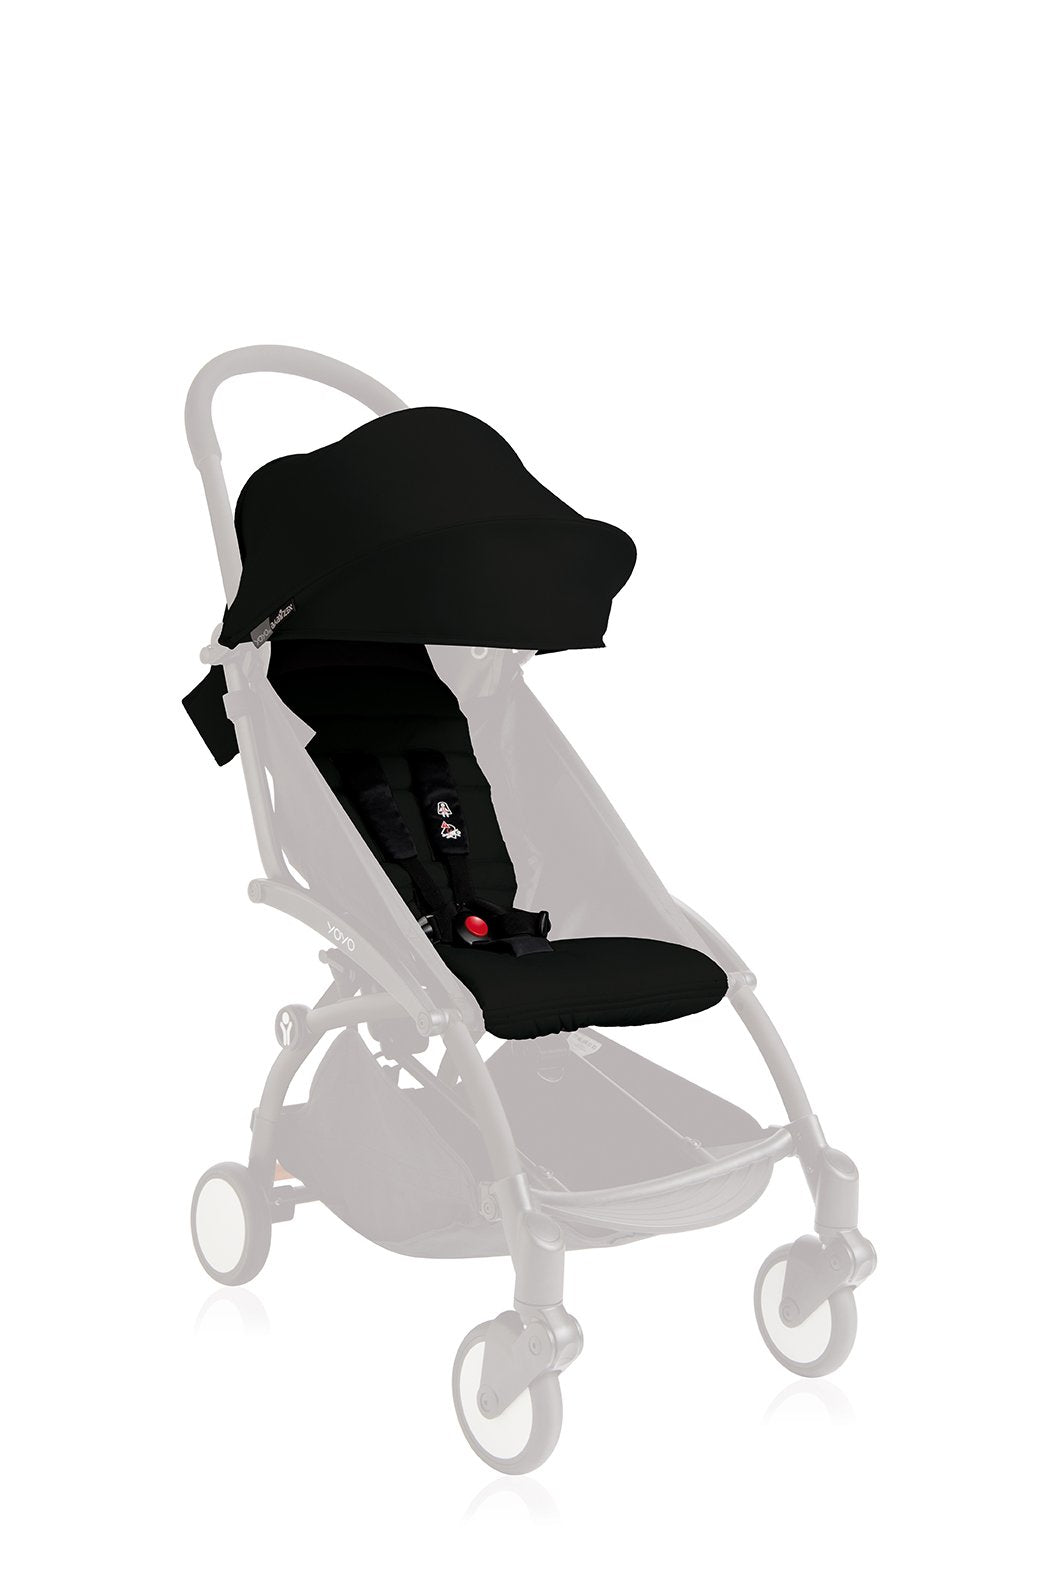 BABYZEN YOYO 6+ Seat Pad and Canopy Only - Black